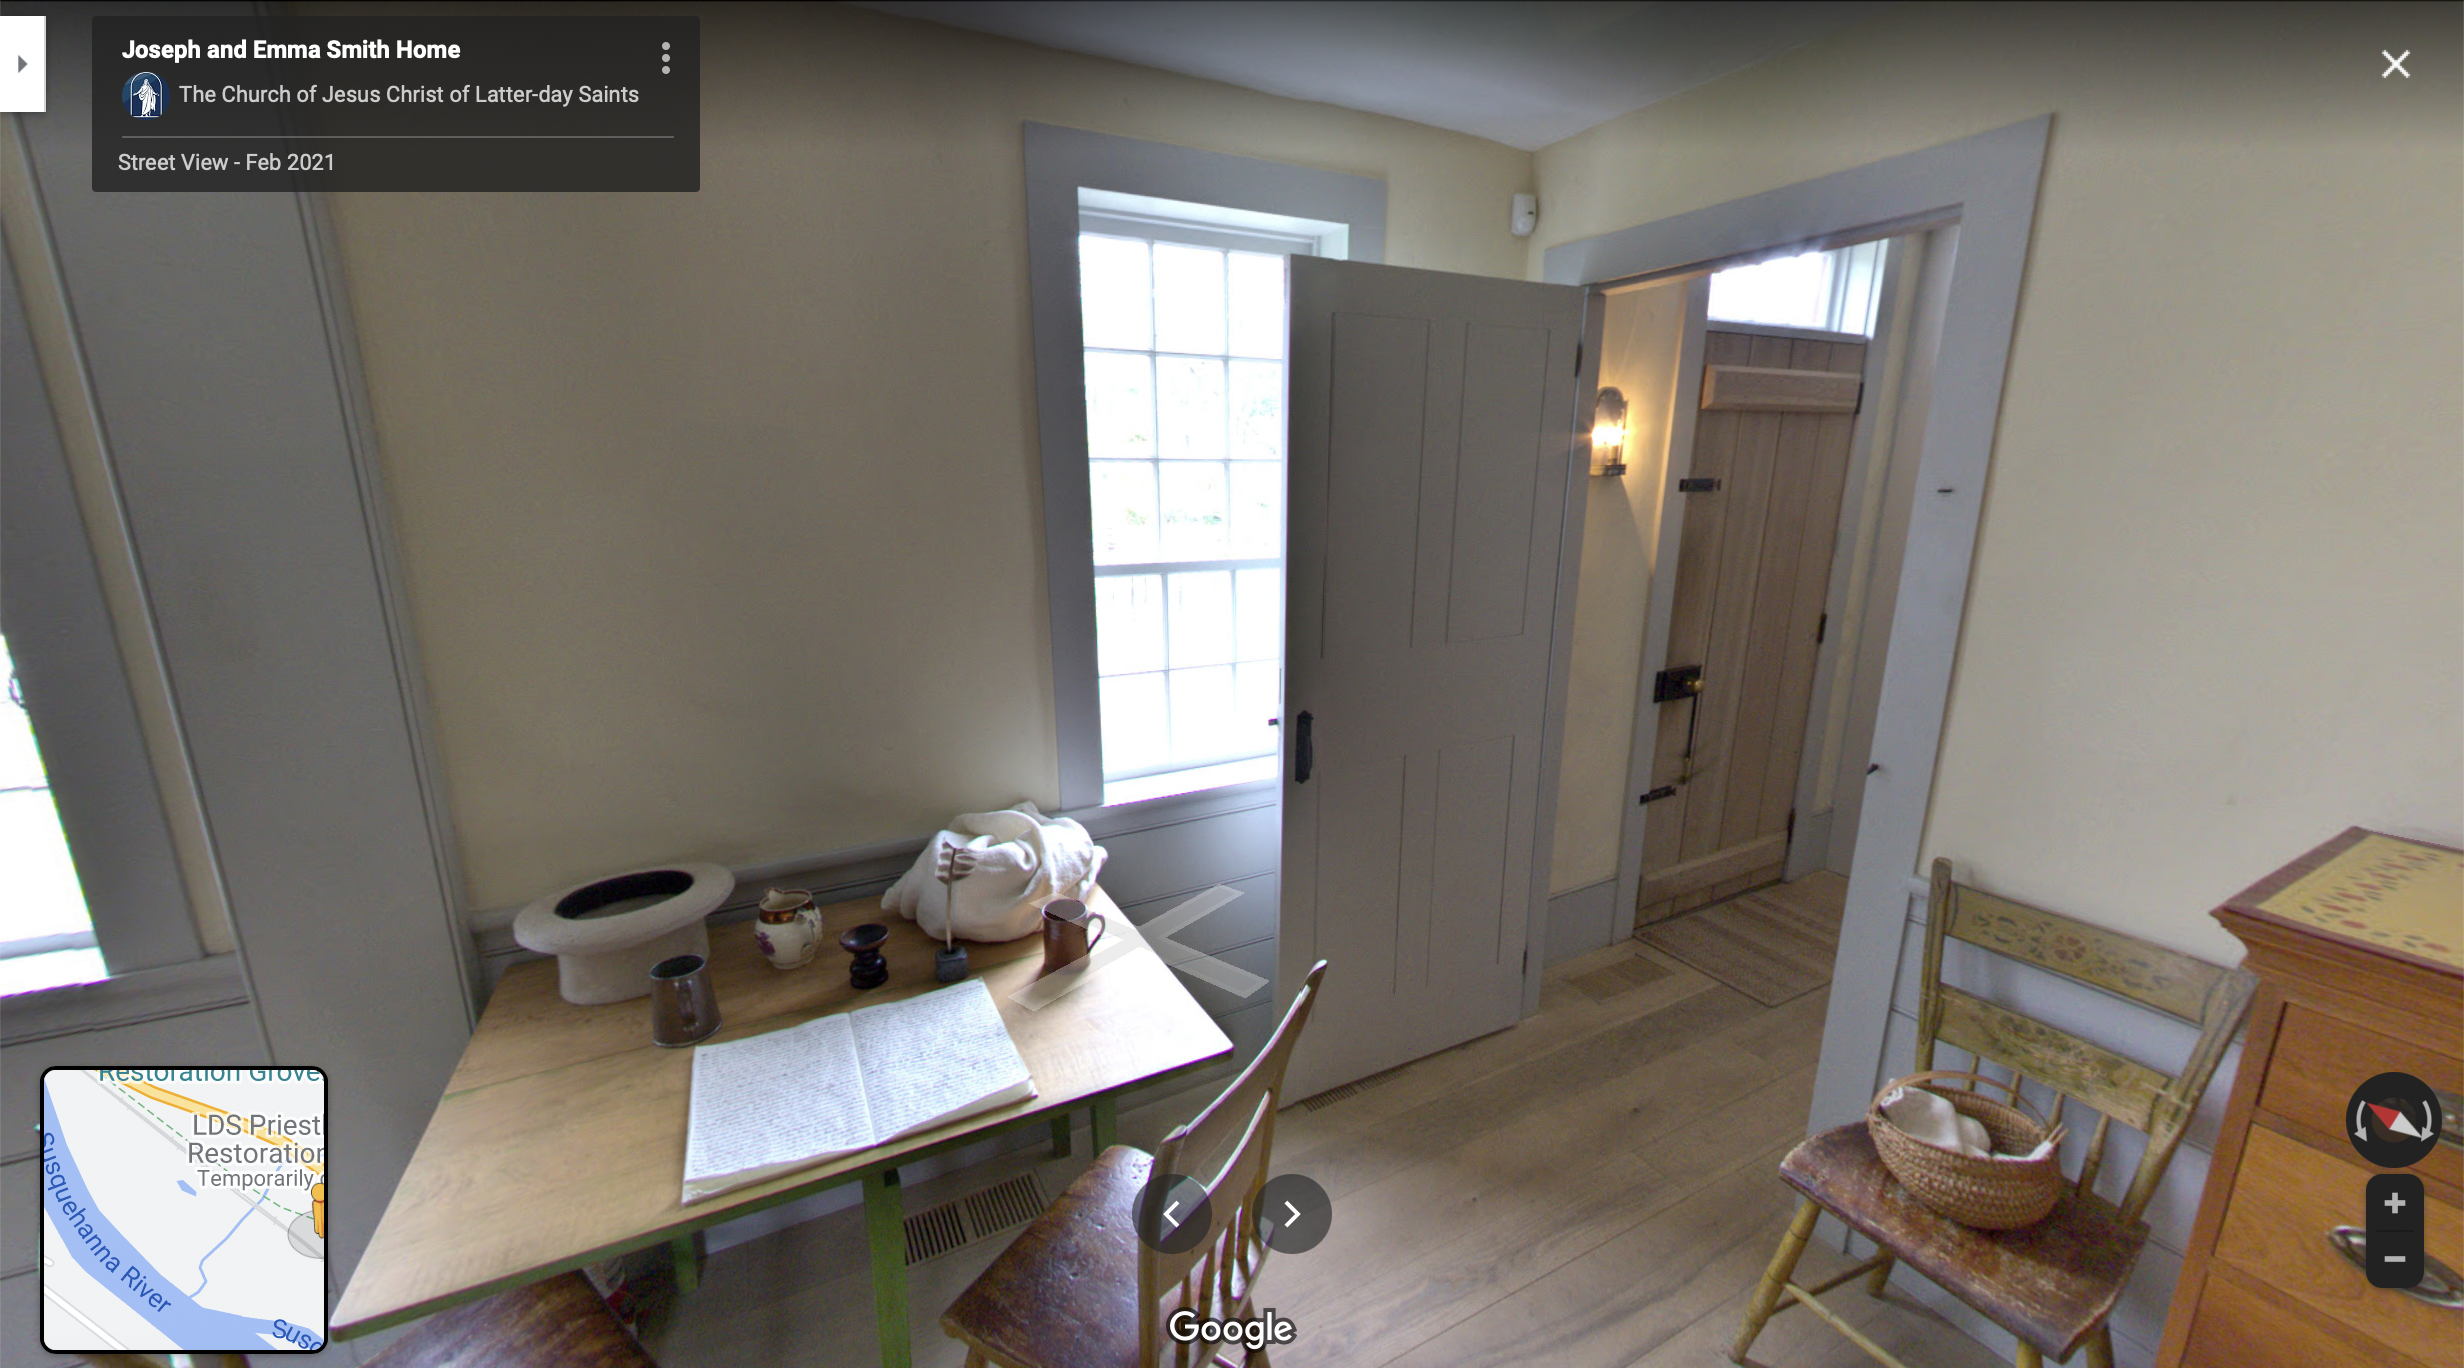 Screenshot of the Google Maps 360 view of Joseph and Emma's Home in Harmony